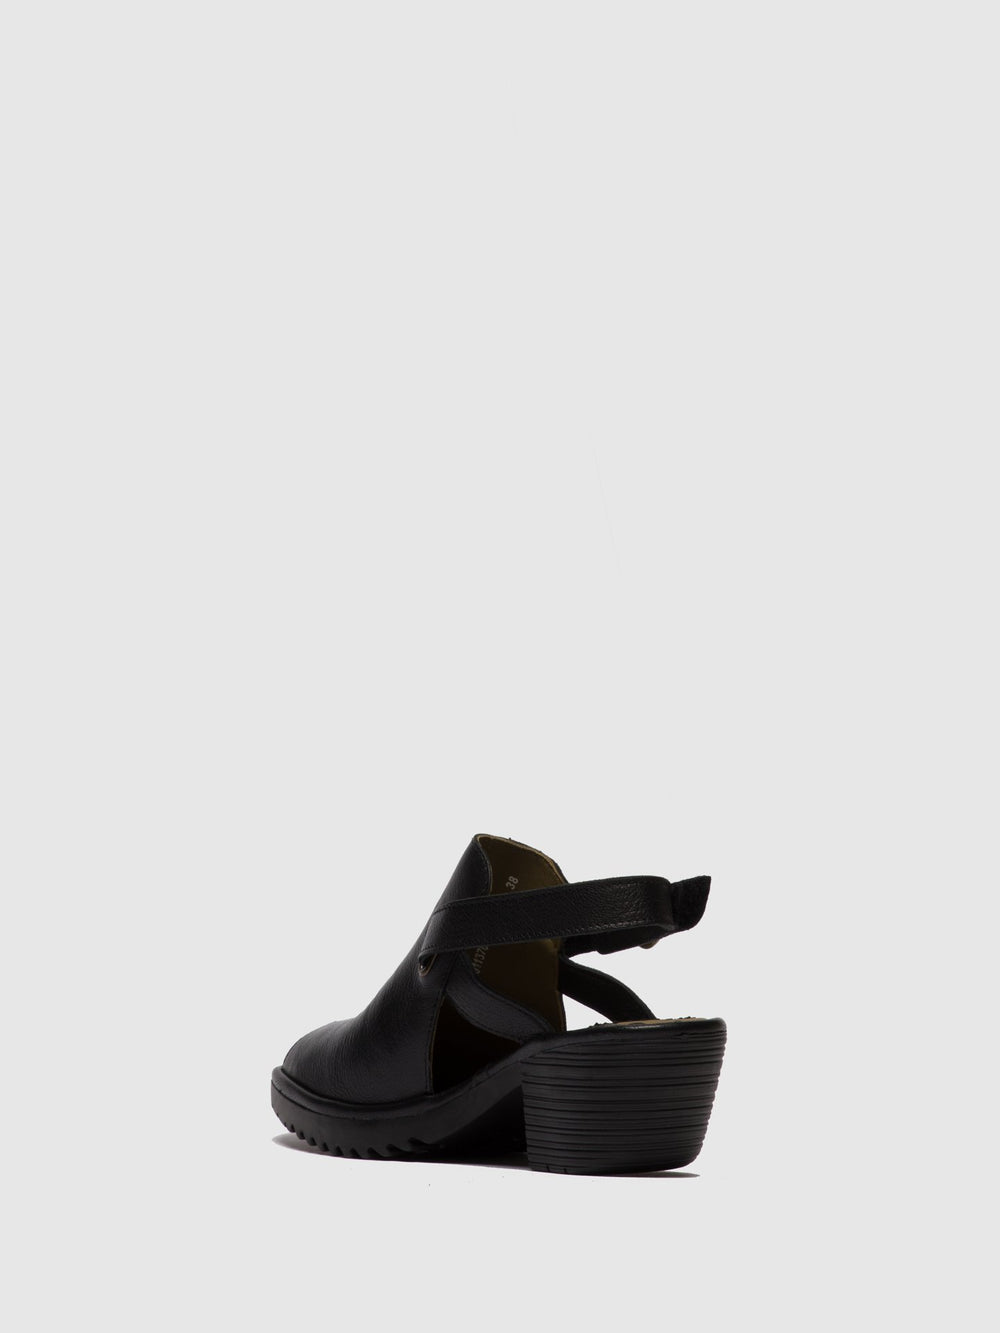 Velcro Sandals WENA137FLY BLACK